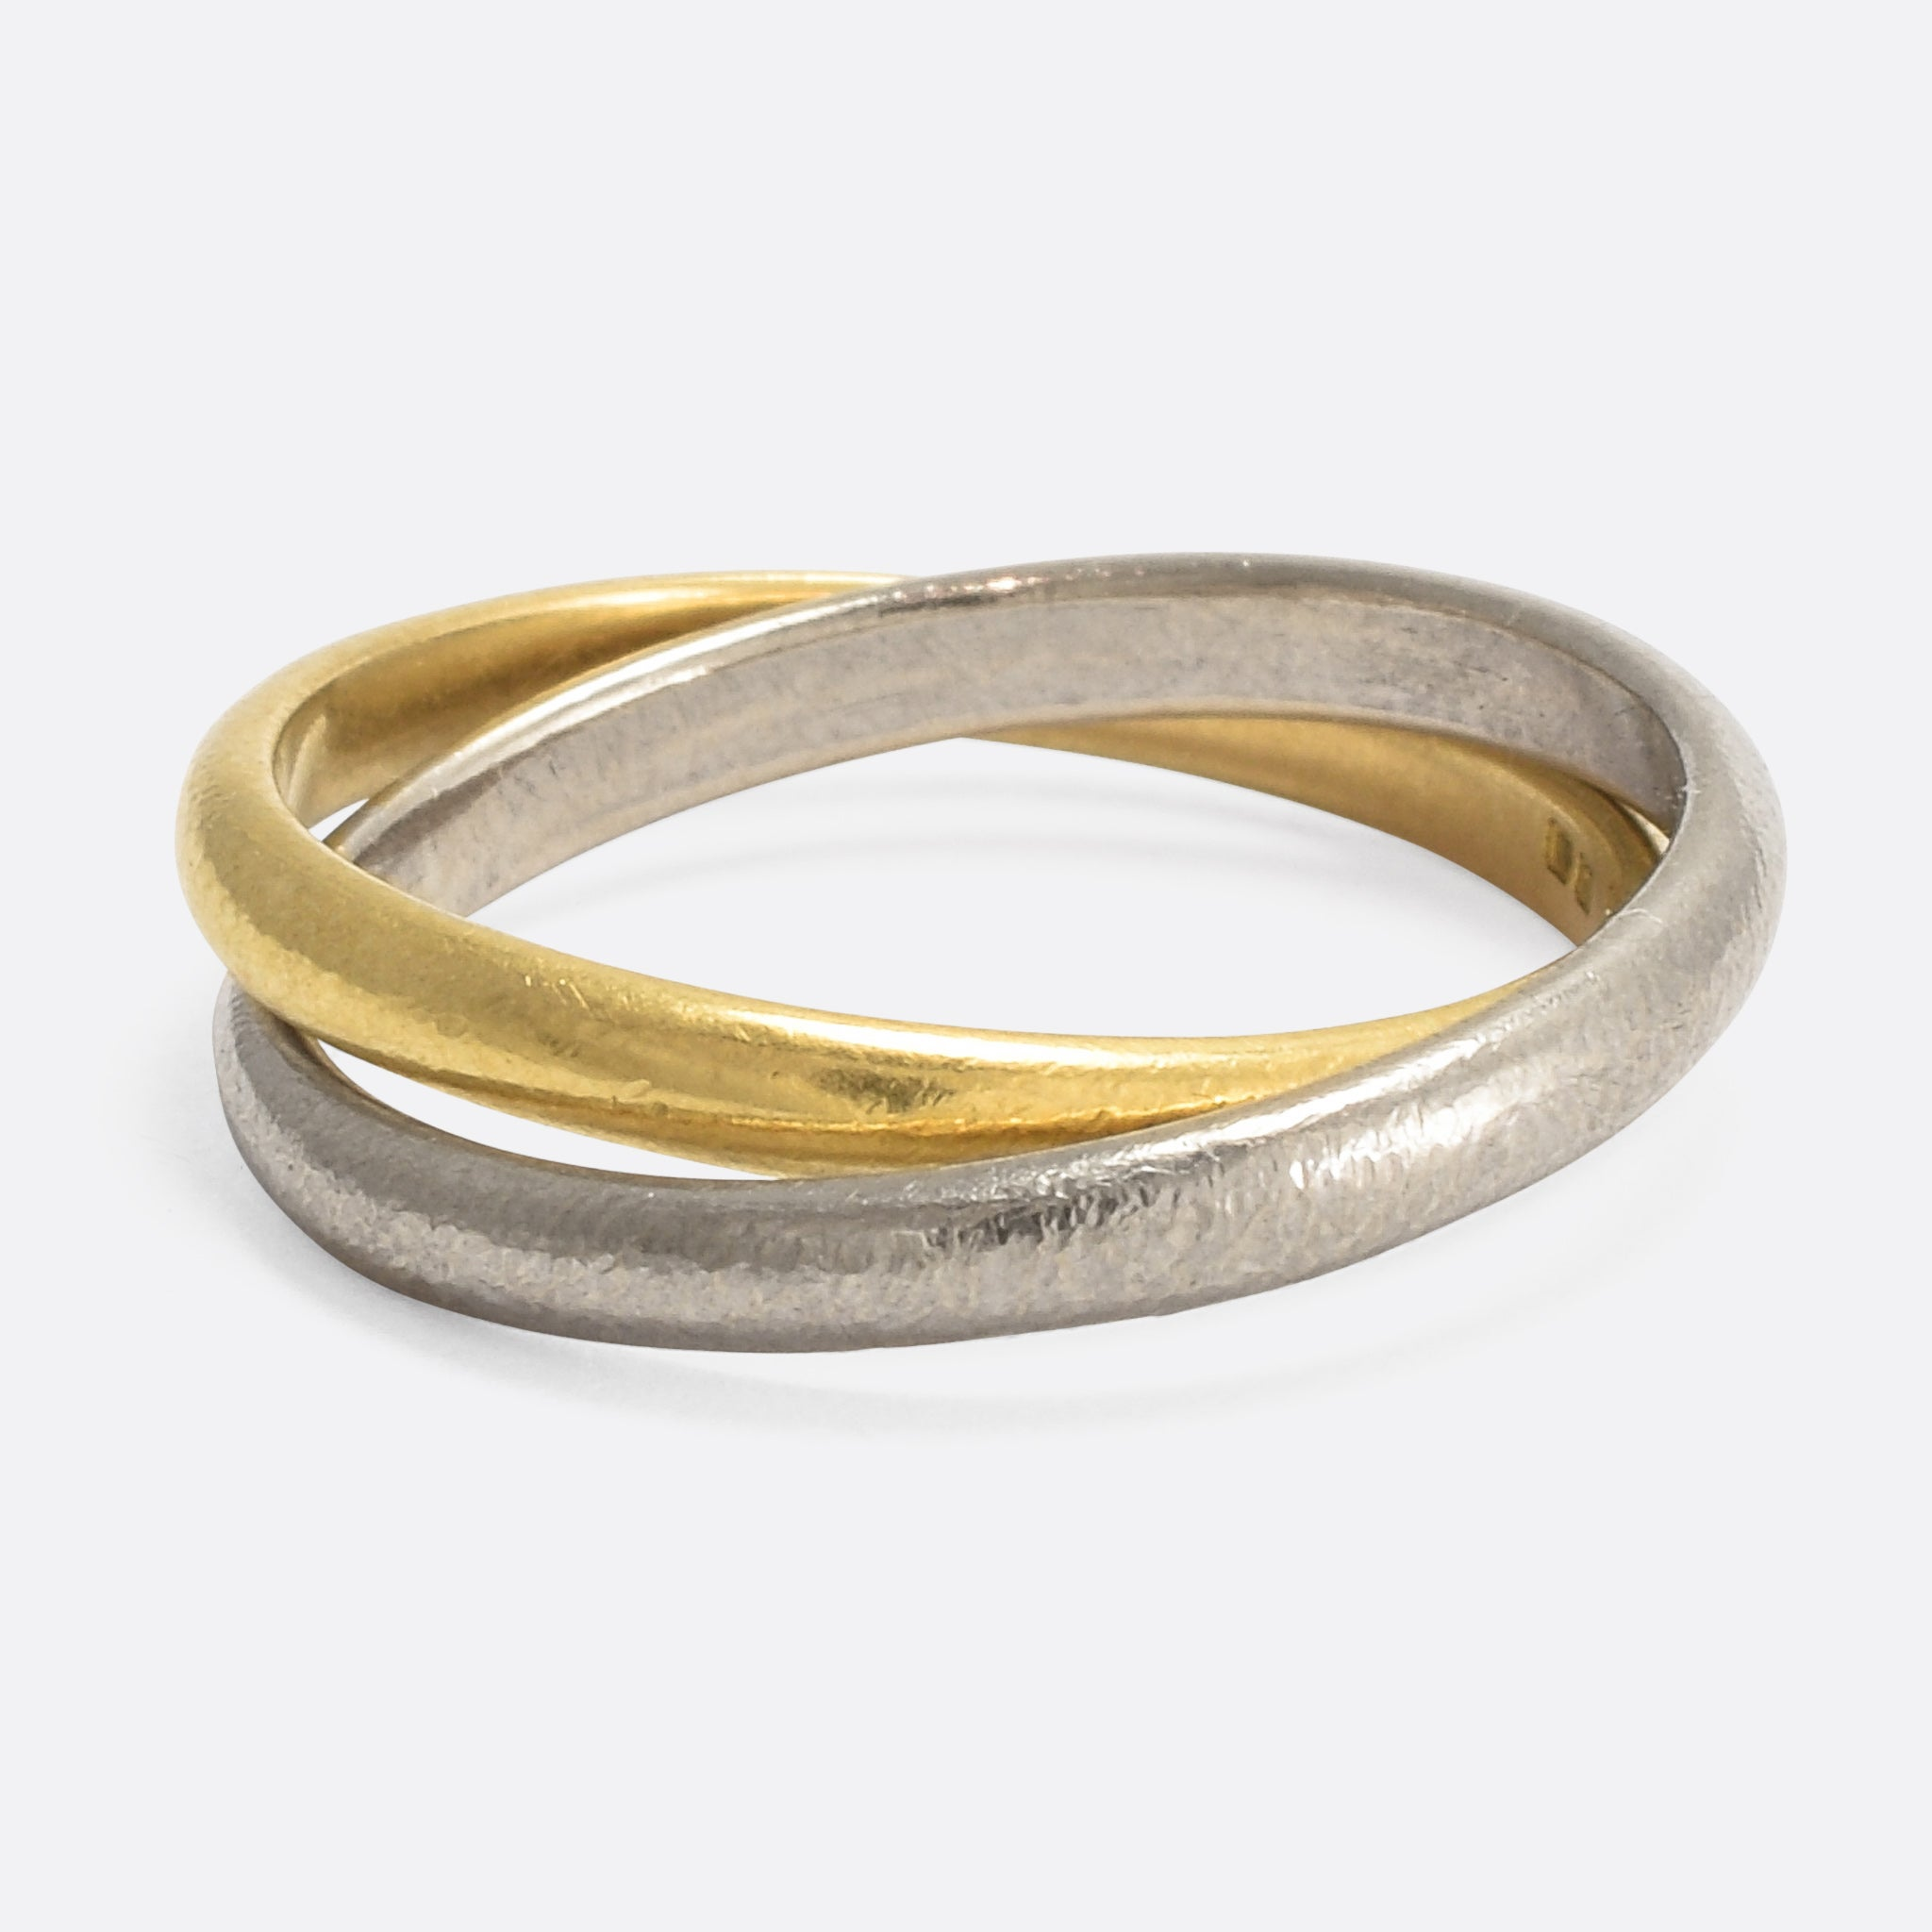 also hb two rings news tone wedding the tears combined check center unique ring but sg engagement gold in natural with very yellow of diamonds bands and white this simple band venus are out